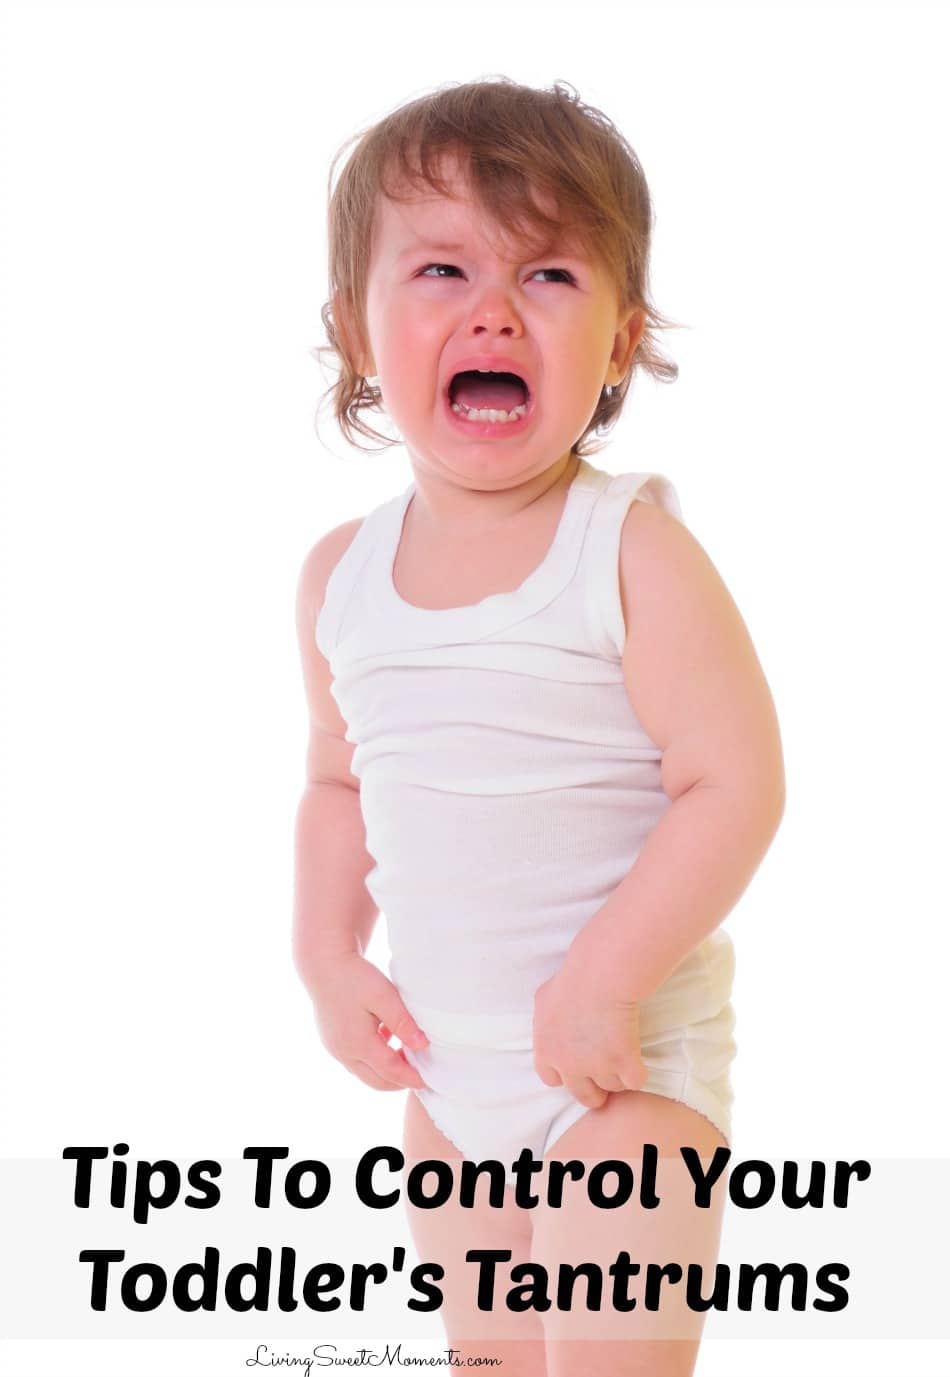 tips-to-controlling-your-childs-tantrums